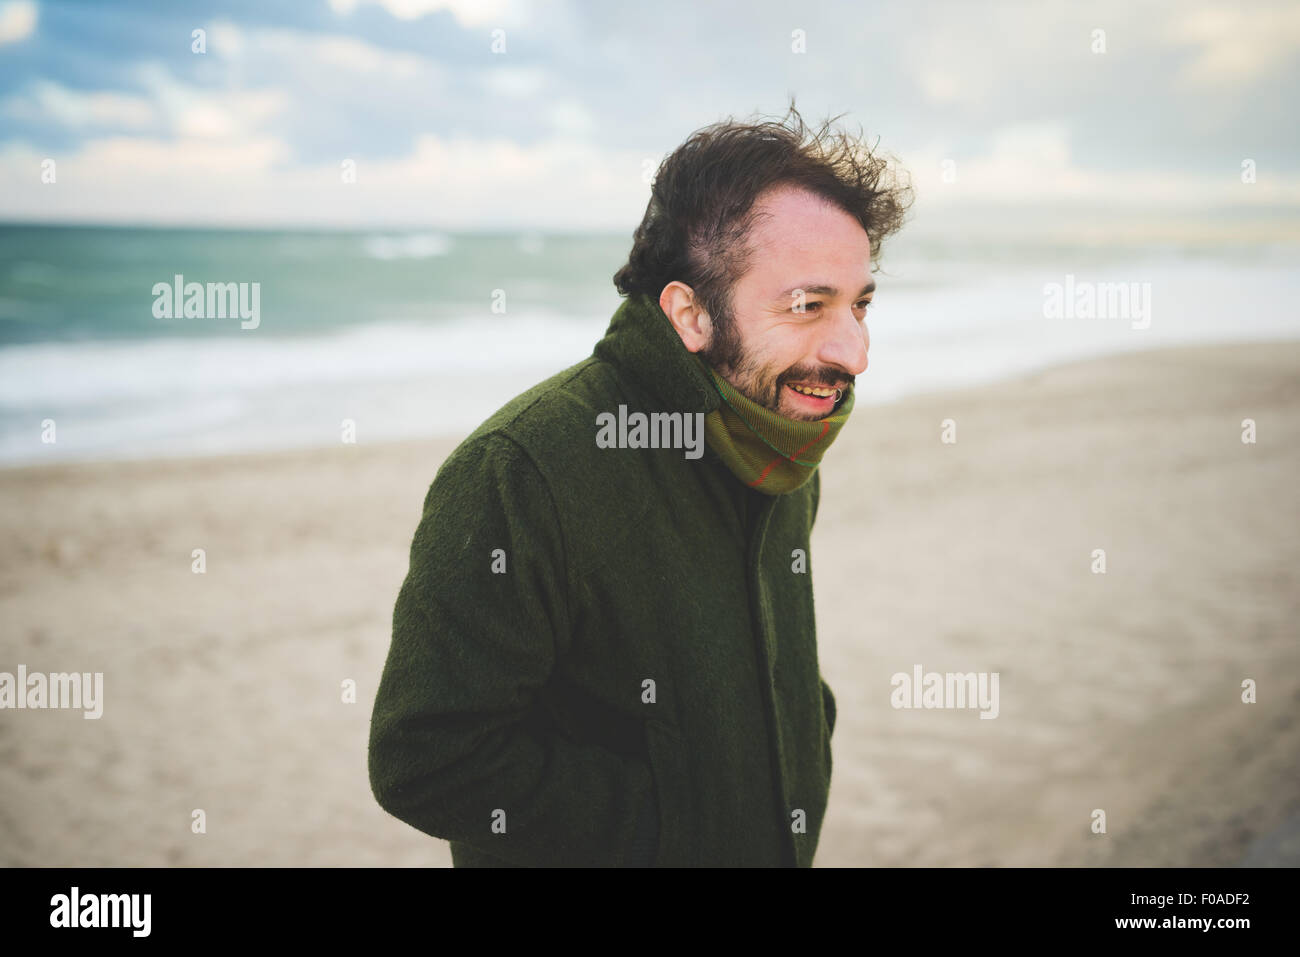 Portrait of mid adult man on windy beach, Sorso, Sassari, Sardinia, Italy - Stock Image